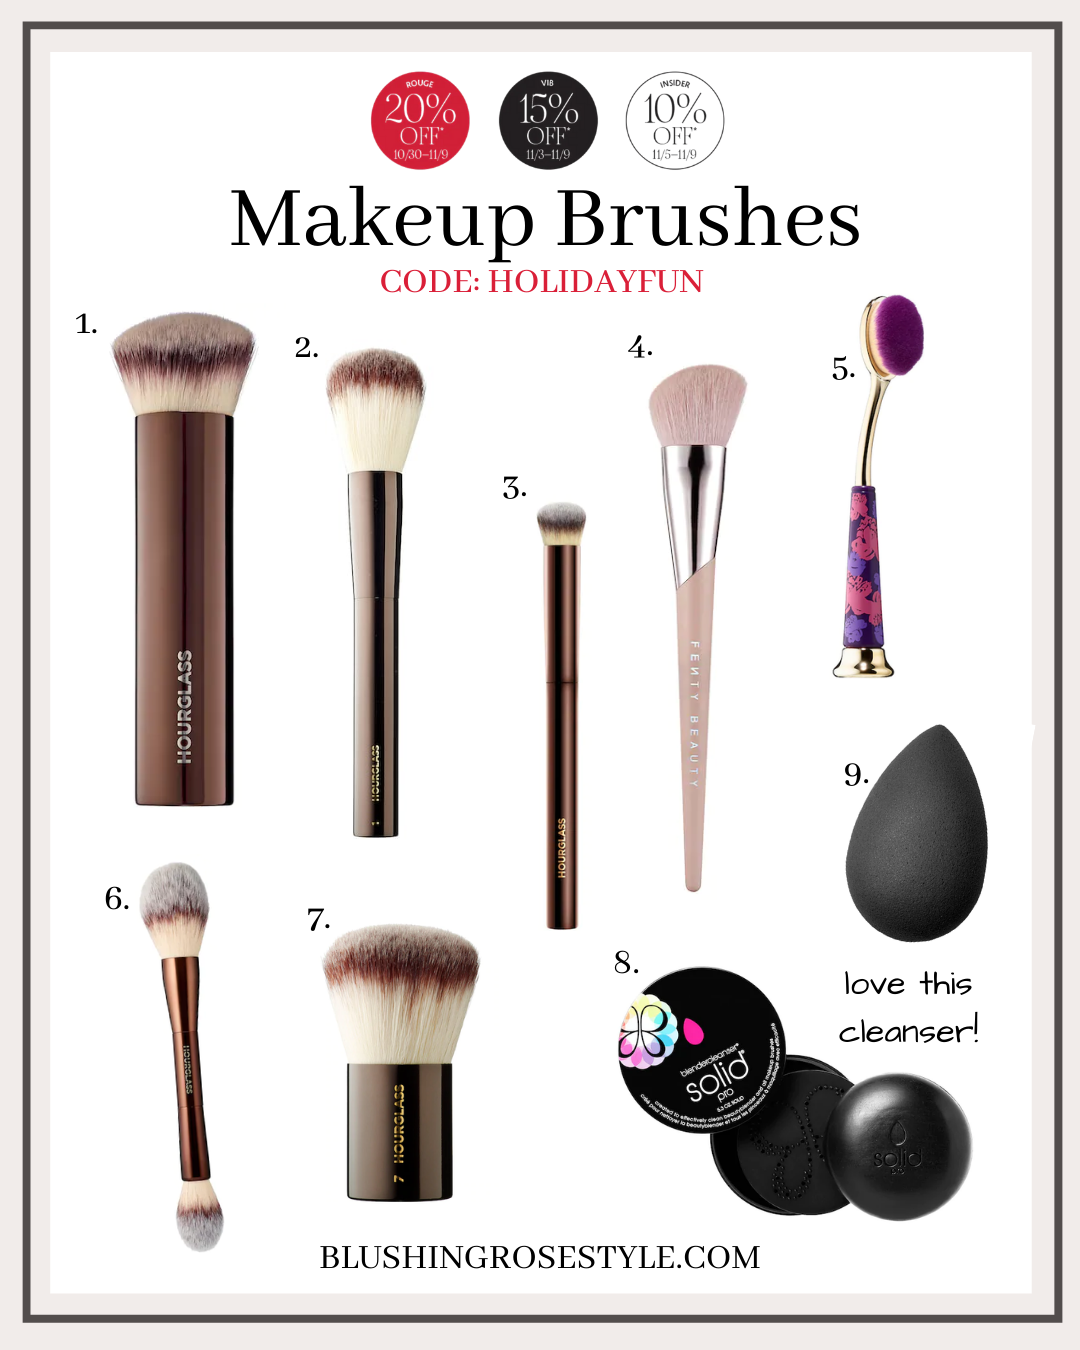 Sephora Makeup Brushes on Sale